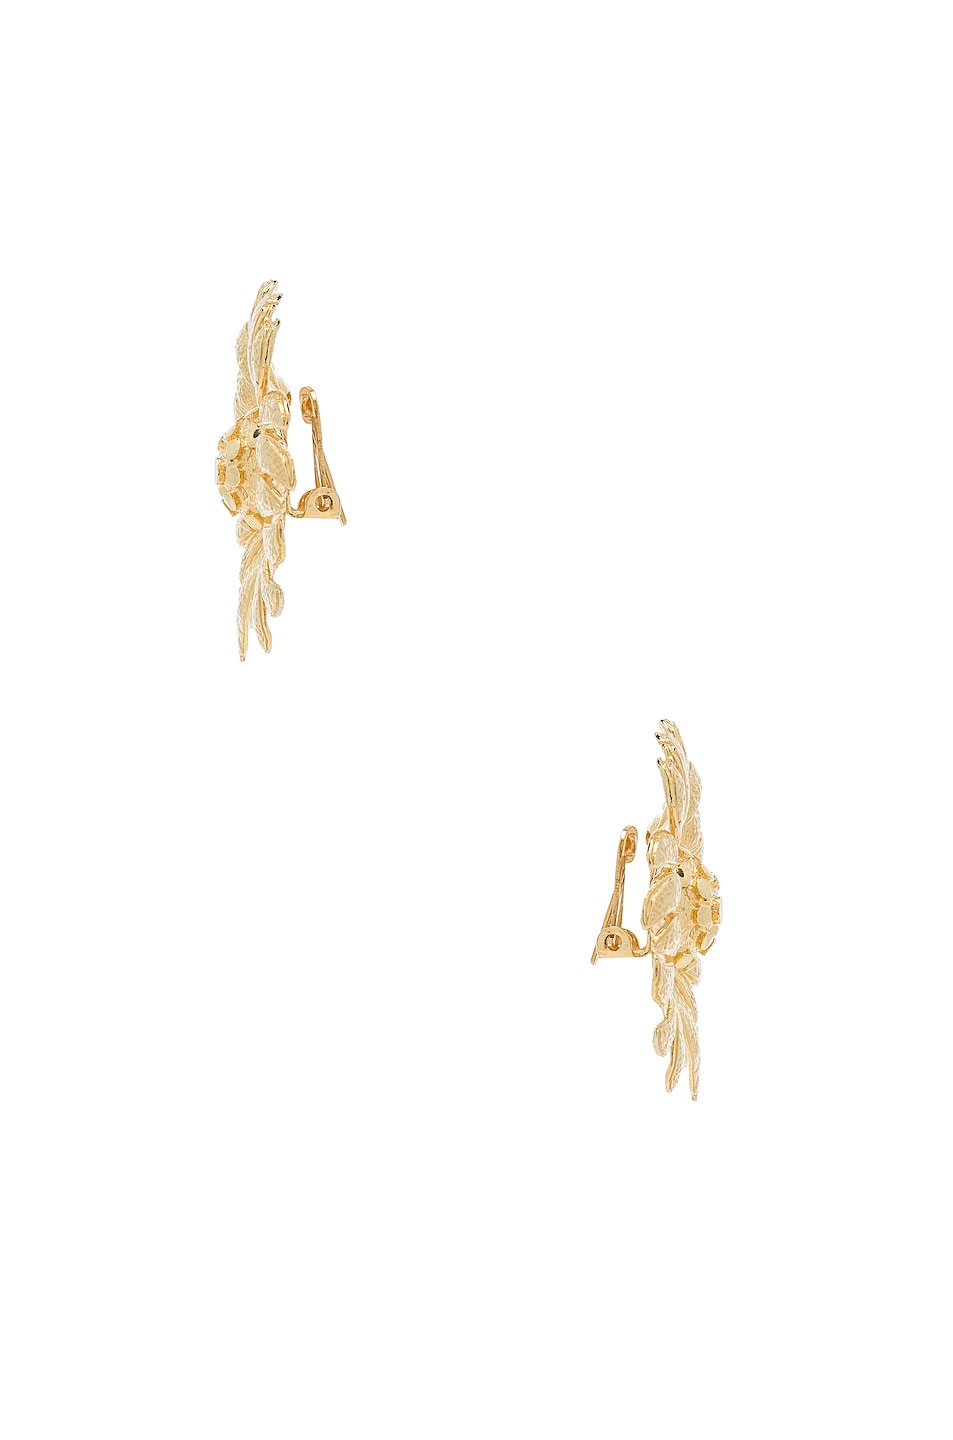 Image 3 of Christie Nicolaides Margarite Earrings in Gold